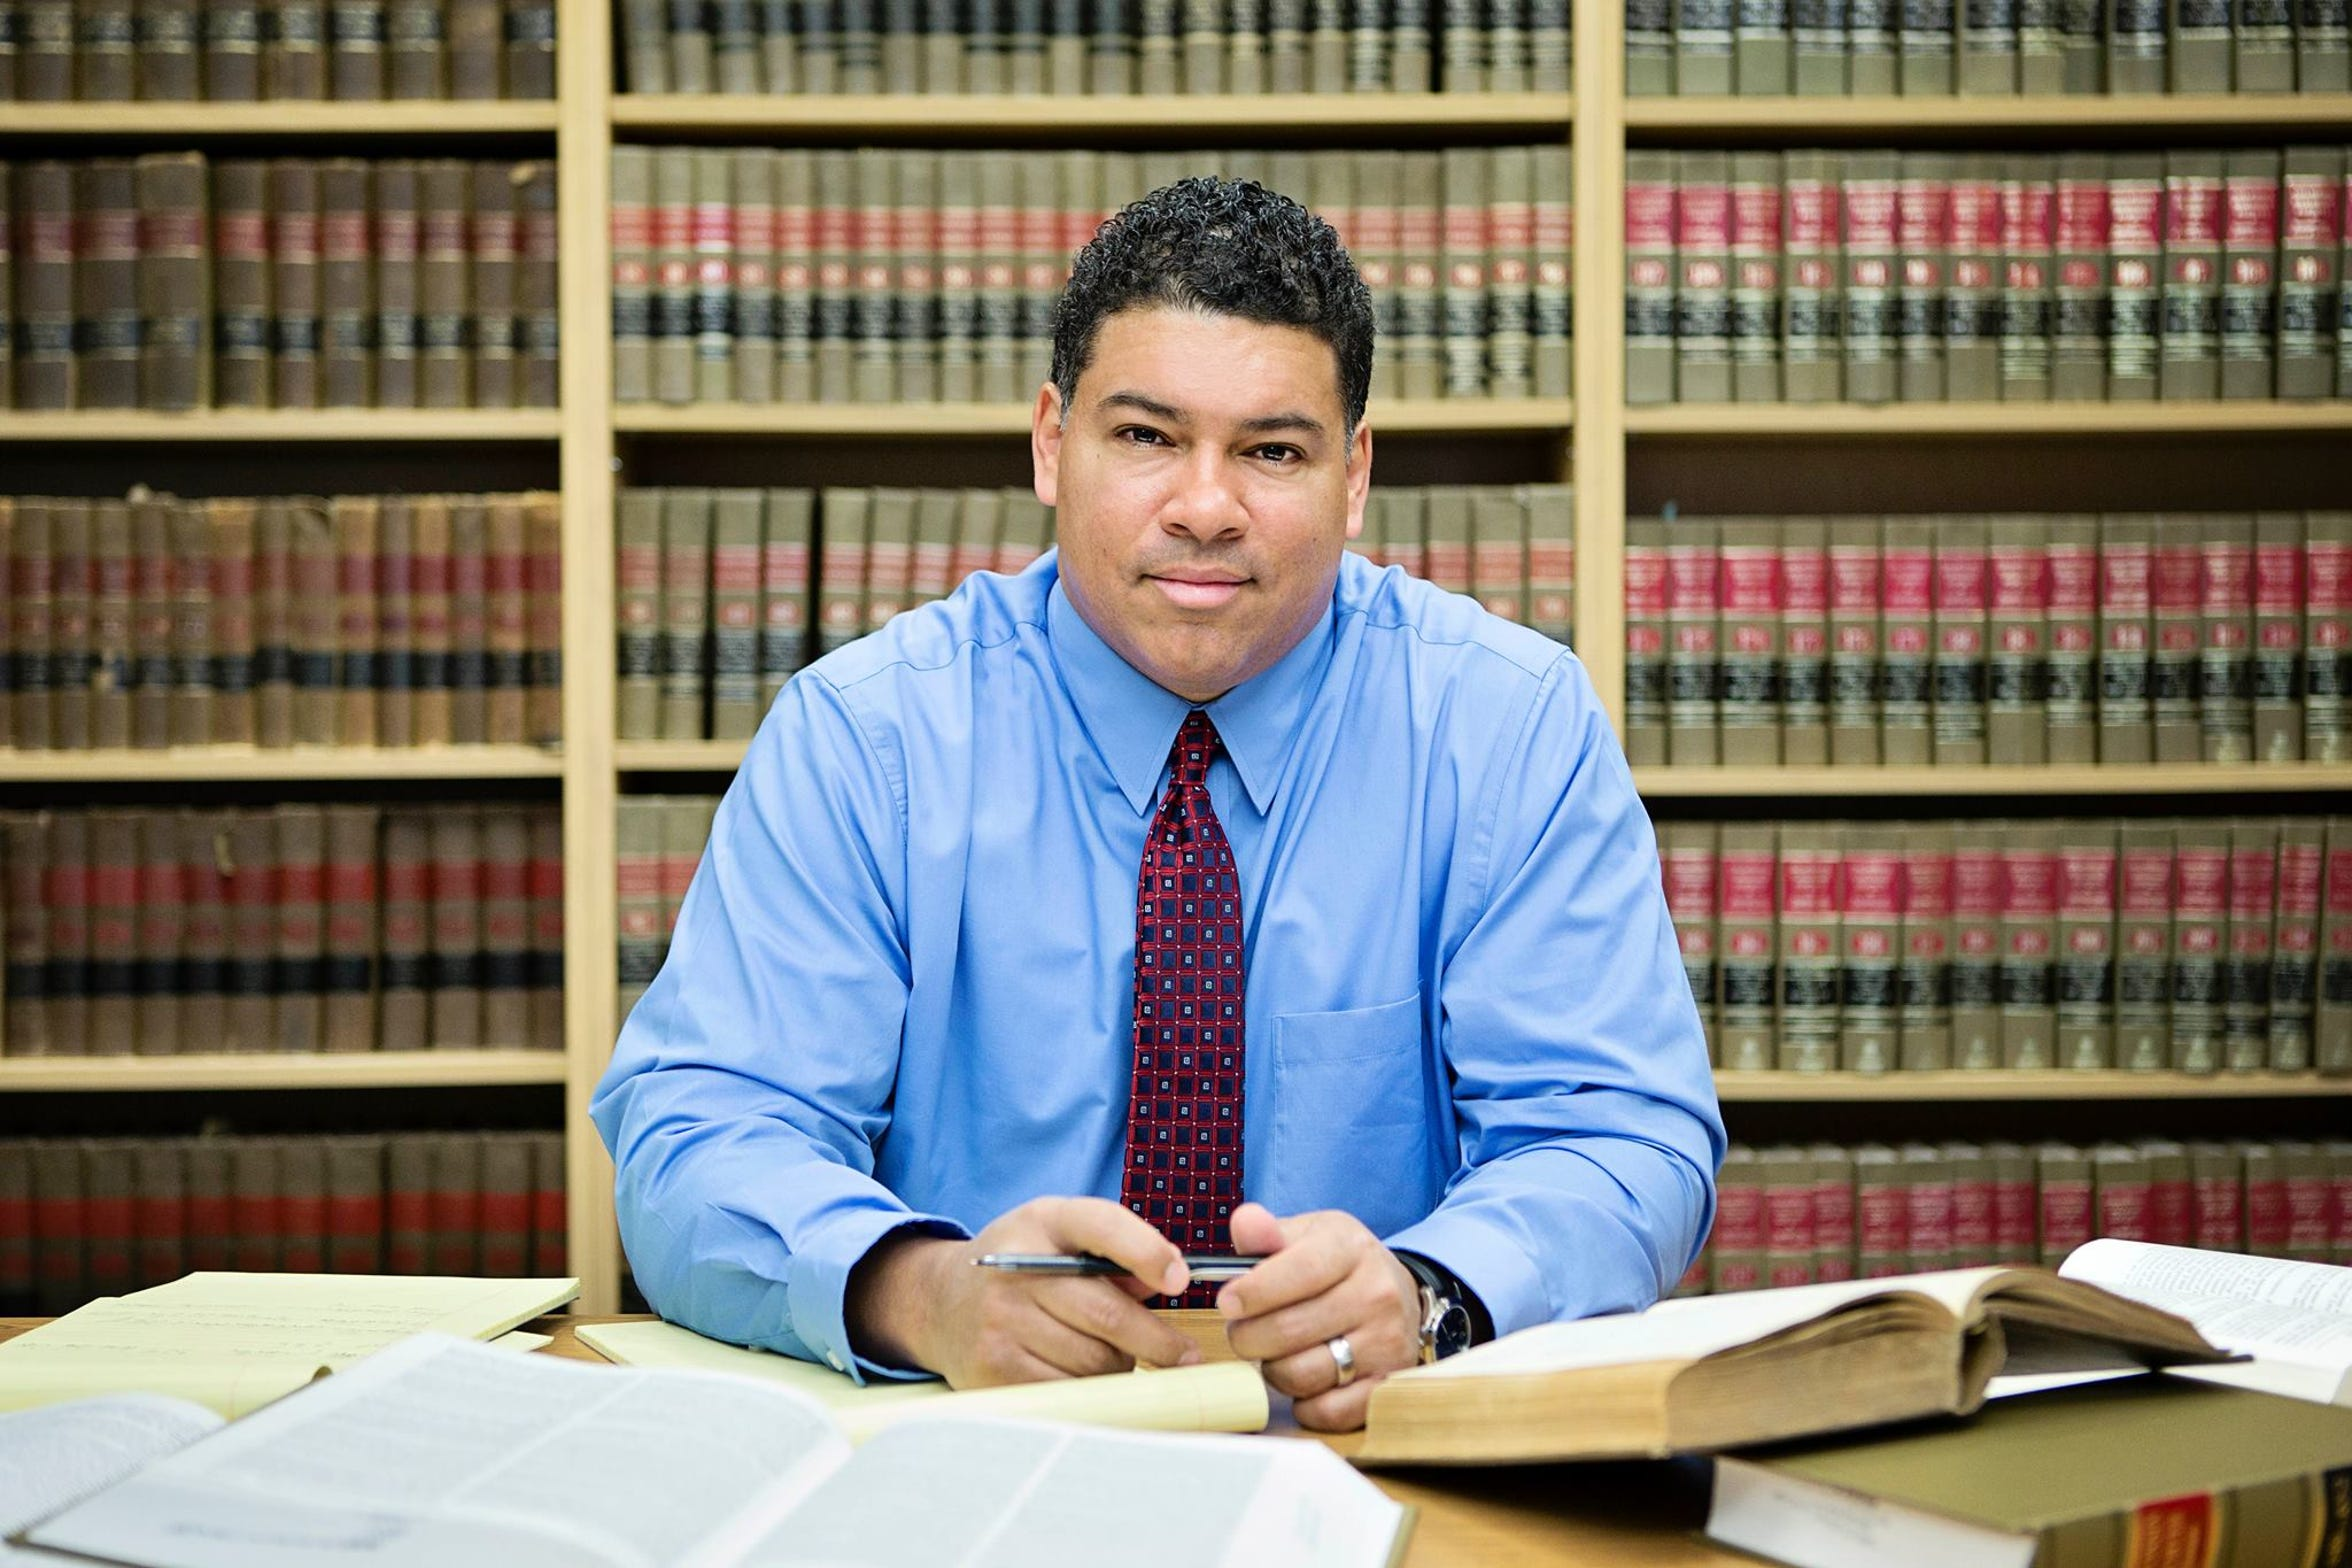 Dane County District Attorney Ismael Ozanne has told law enforcement officials not to bring him any marijuana possession cases smaller than 4 ounces — or more than four times as much as what Gov. Tony Evers outlined in his decriminalization proposal.